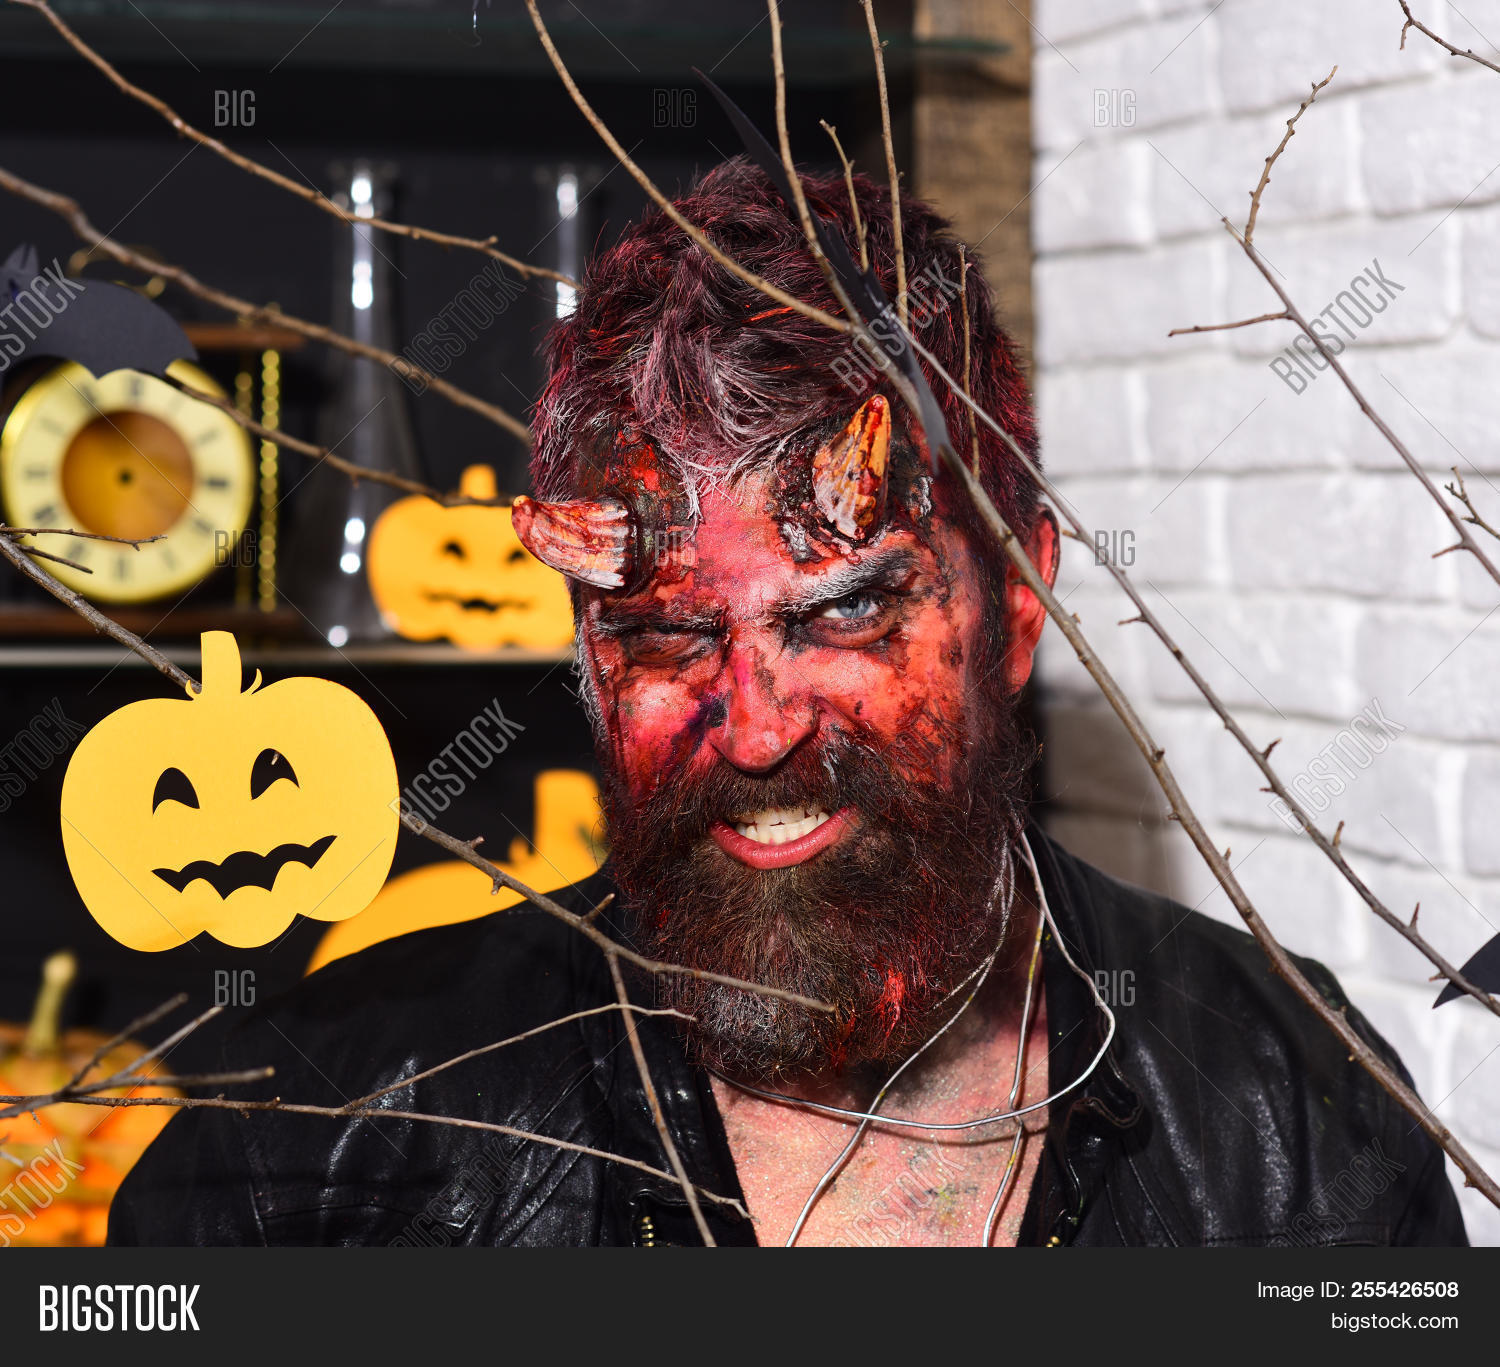 devil monster partying image & photo (free trial) | bigstock